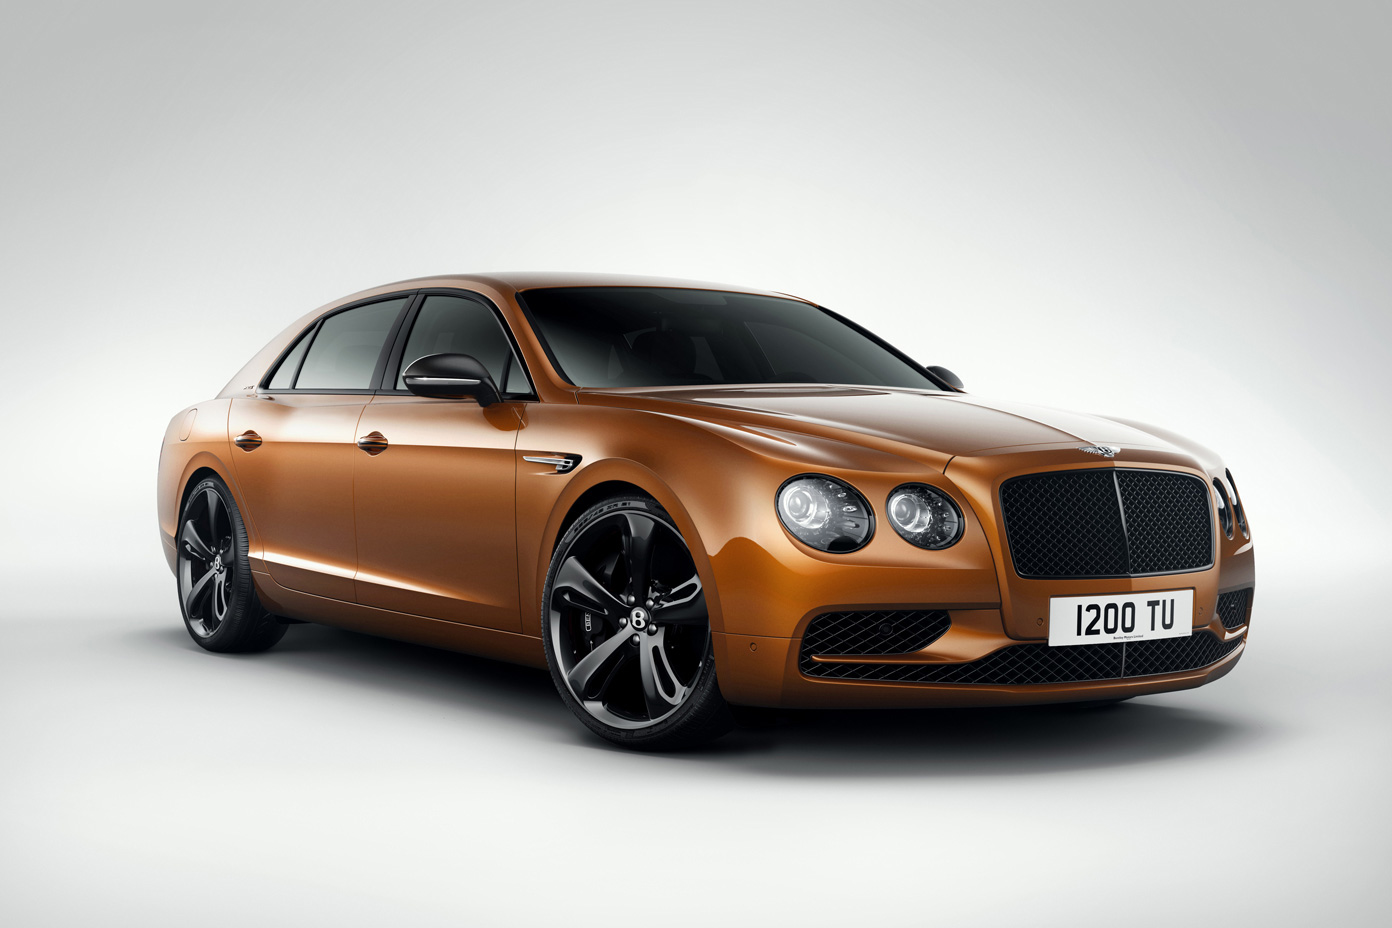 The New Bentley Flying Spur W12 S Is the Fastest Sedan Ever